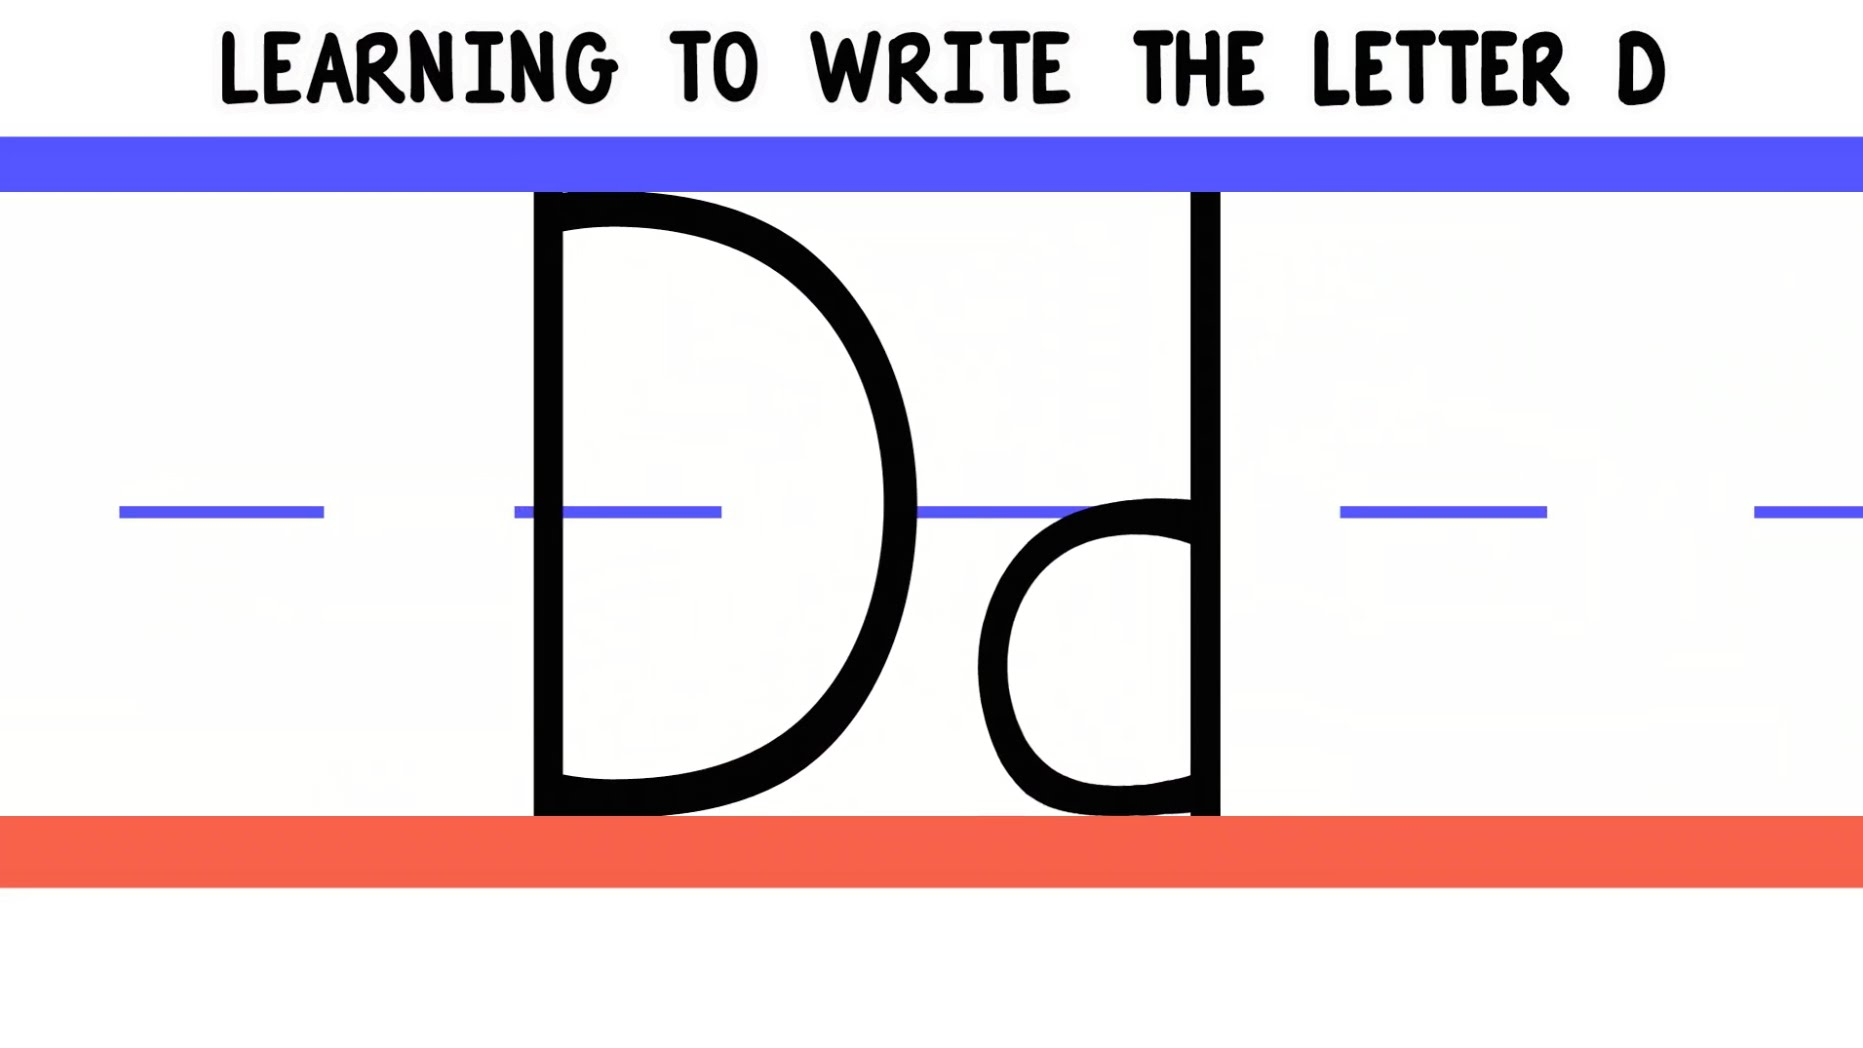 writing letters letter d practice handwriting downloads 123abc tv 25846 | 1755